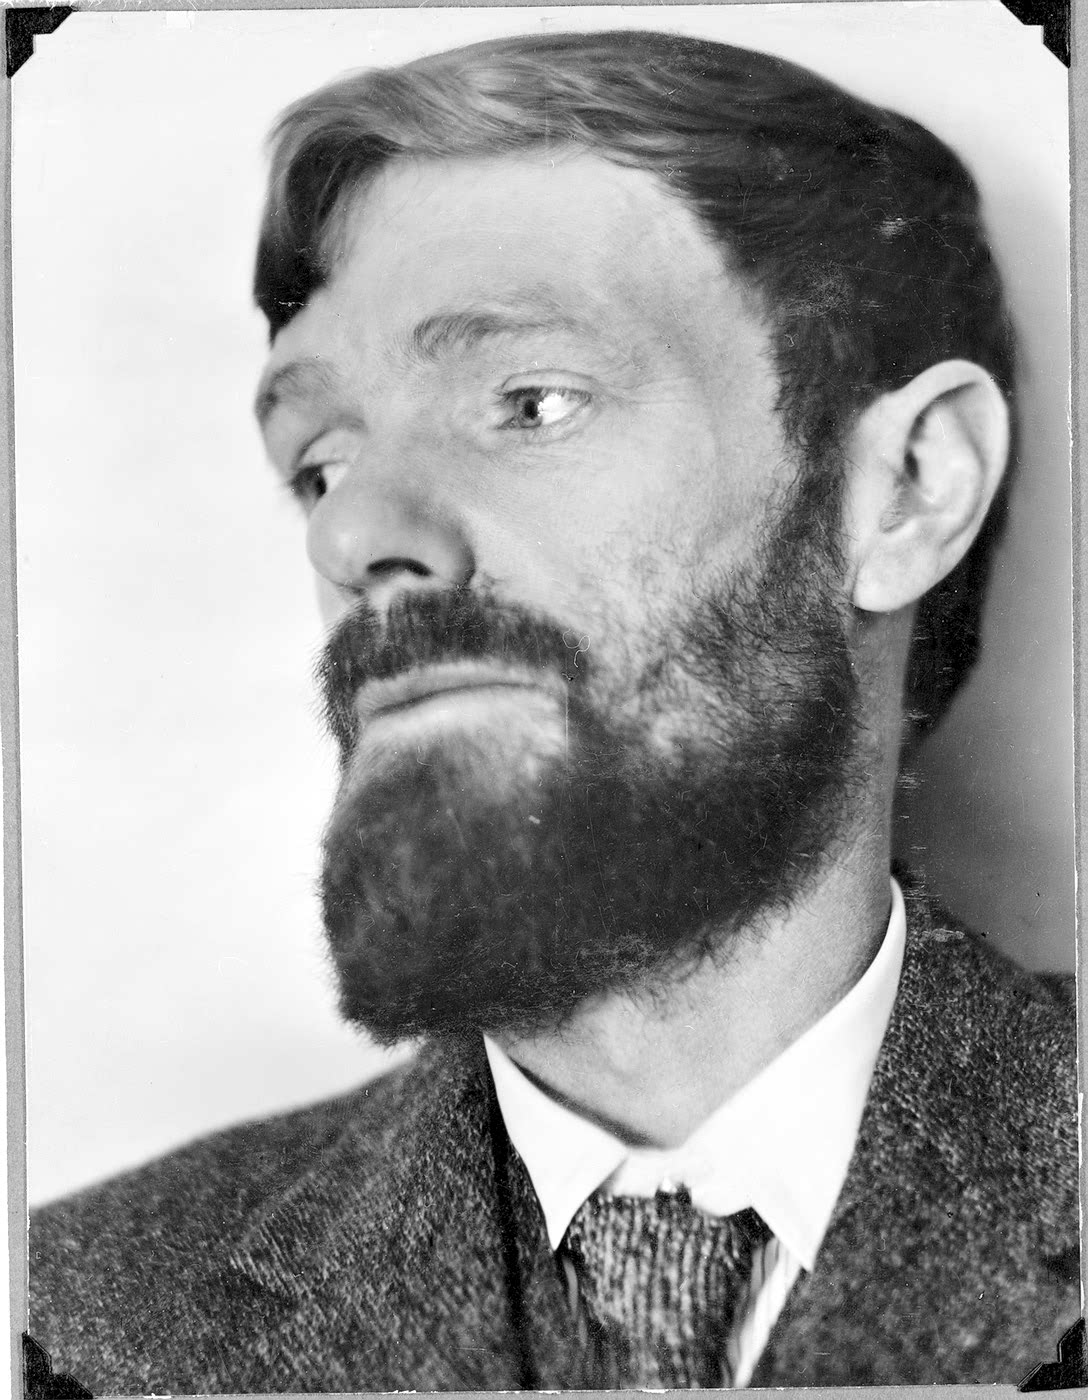 D. H. Lawrence photo #5420, D. H. Lawrence image